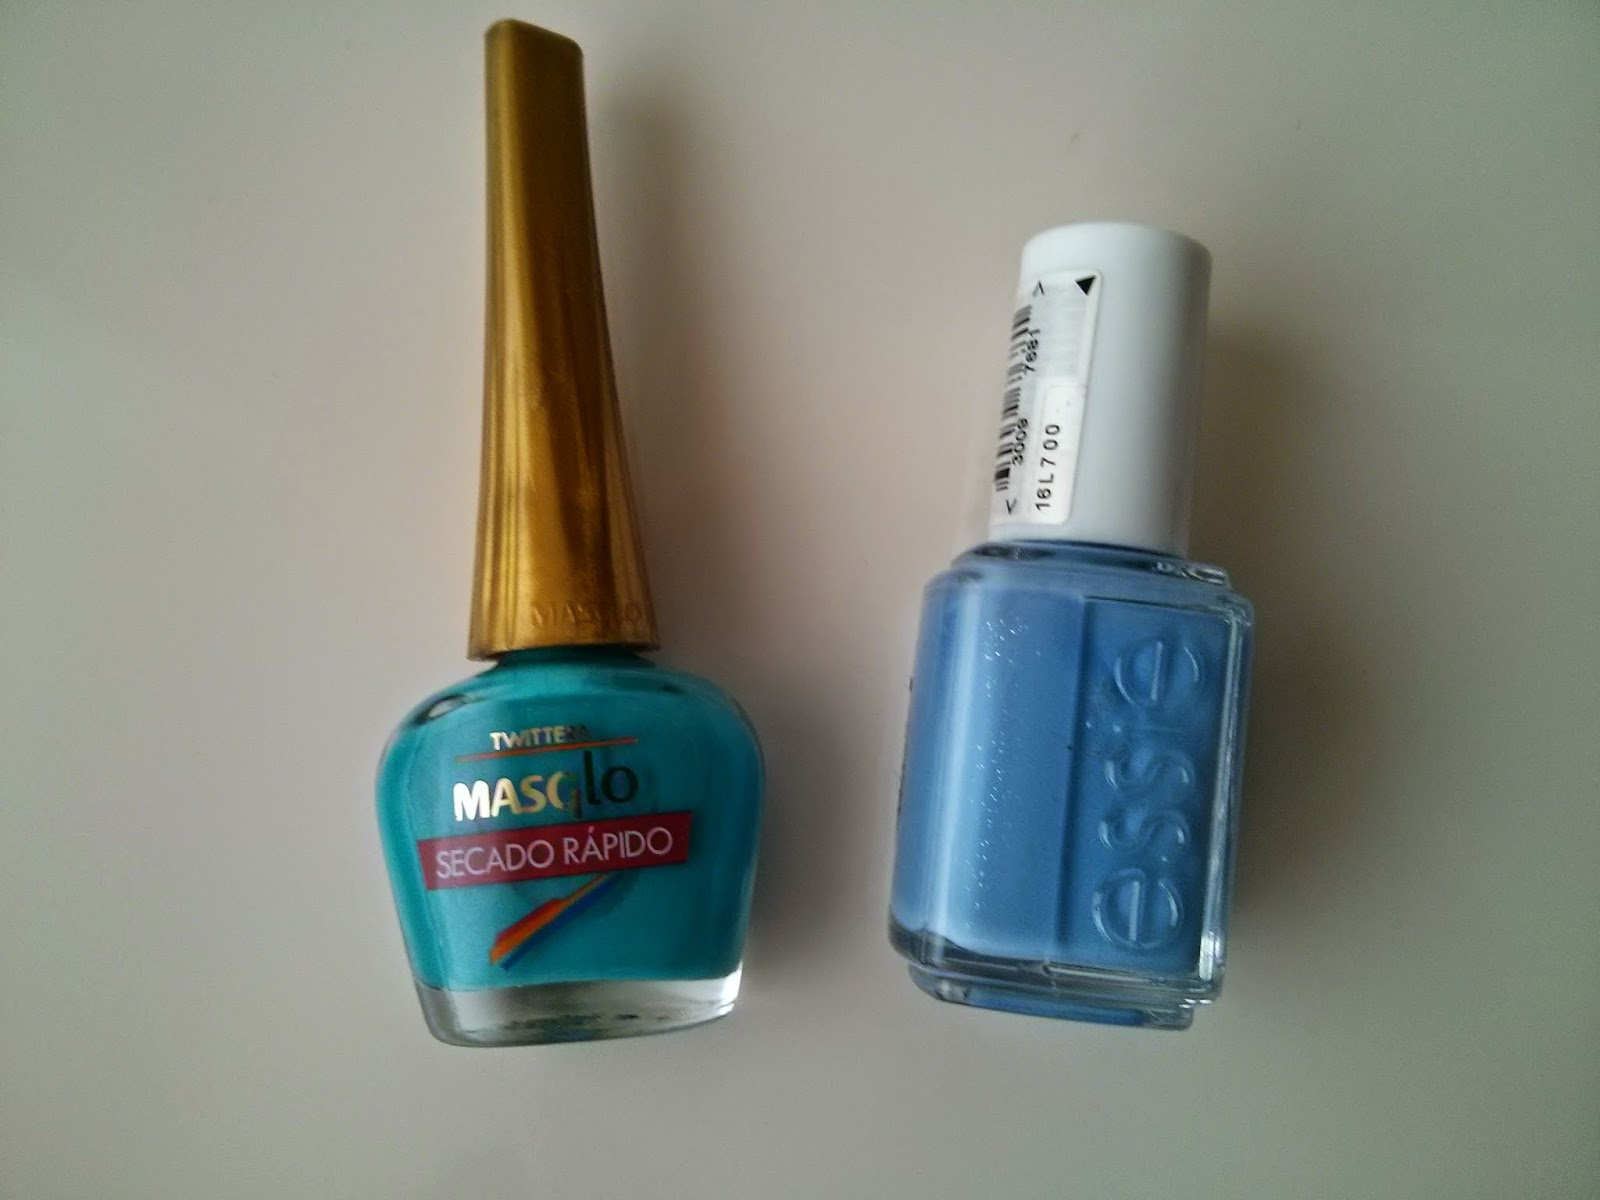 VipandSmart Beauty reviews Essie y Masglo